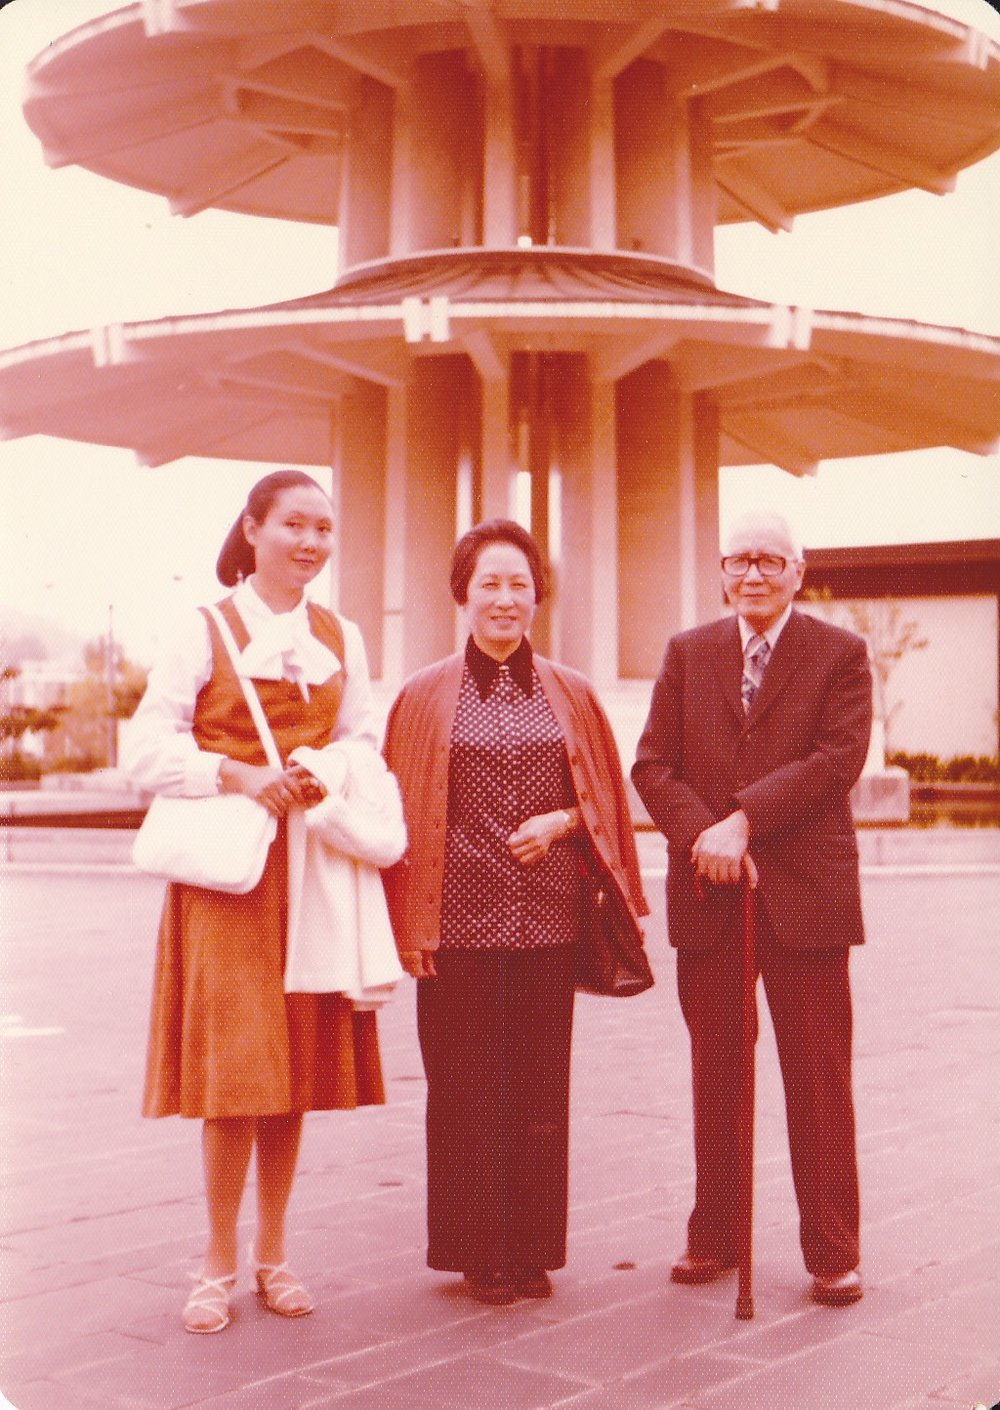 With sister-in-law Zing Wei Huang and Lulu in SF, c. 1968.